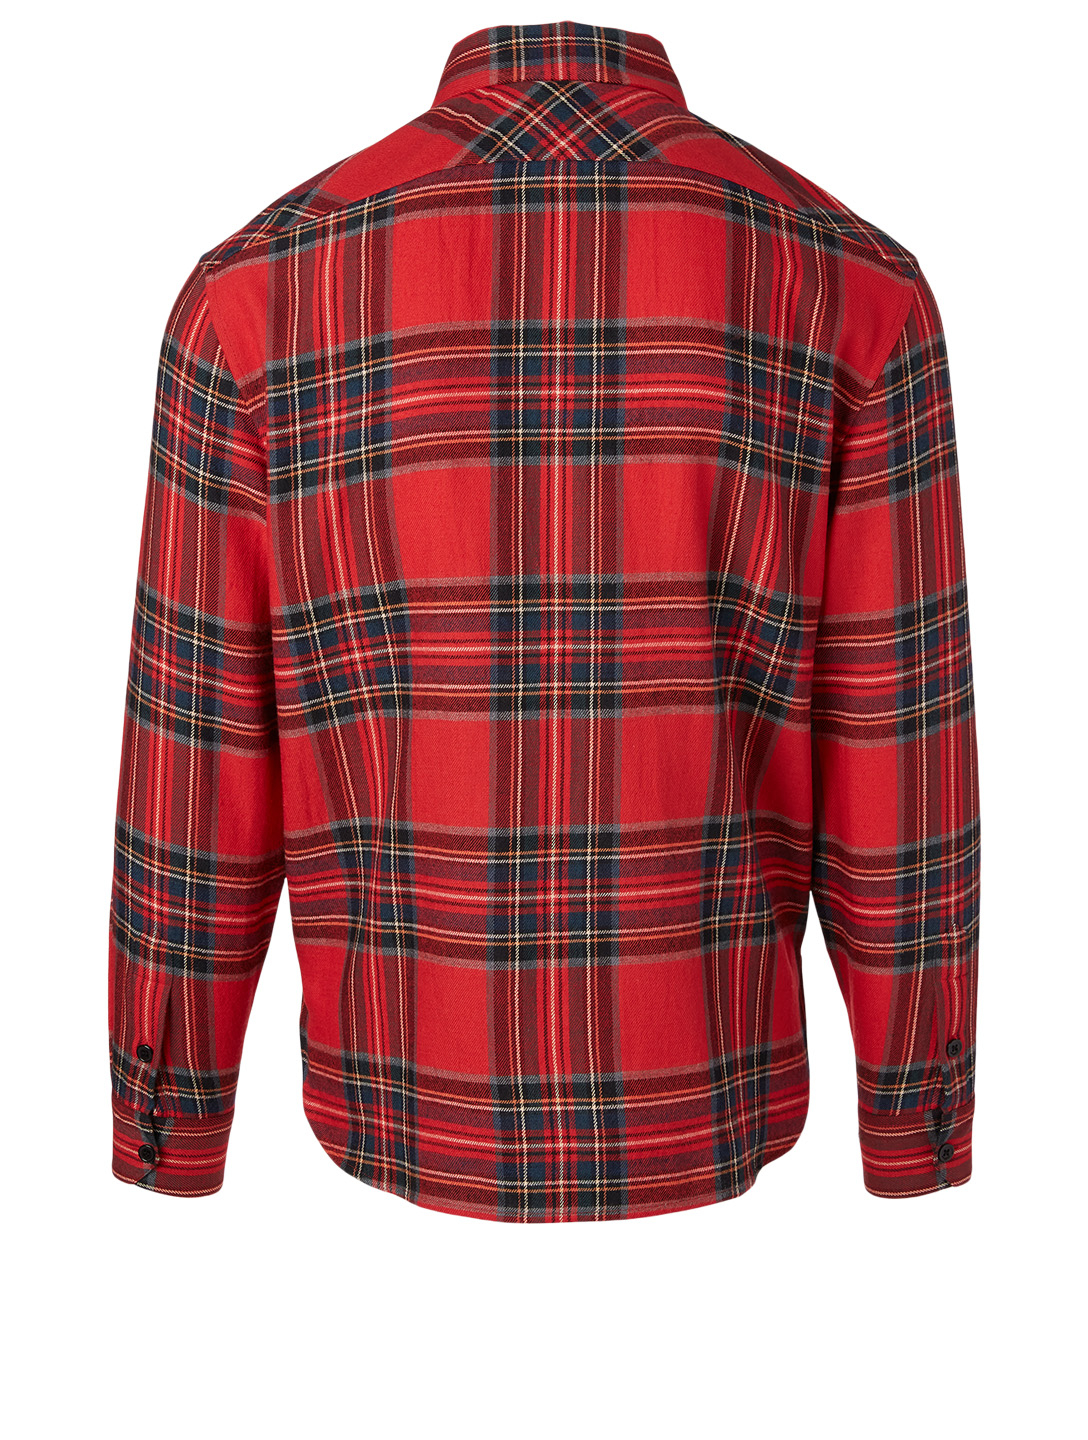 SAINT LAURENT Embroidered Shirt In Tartan Flannel Men's Red